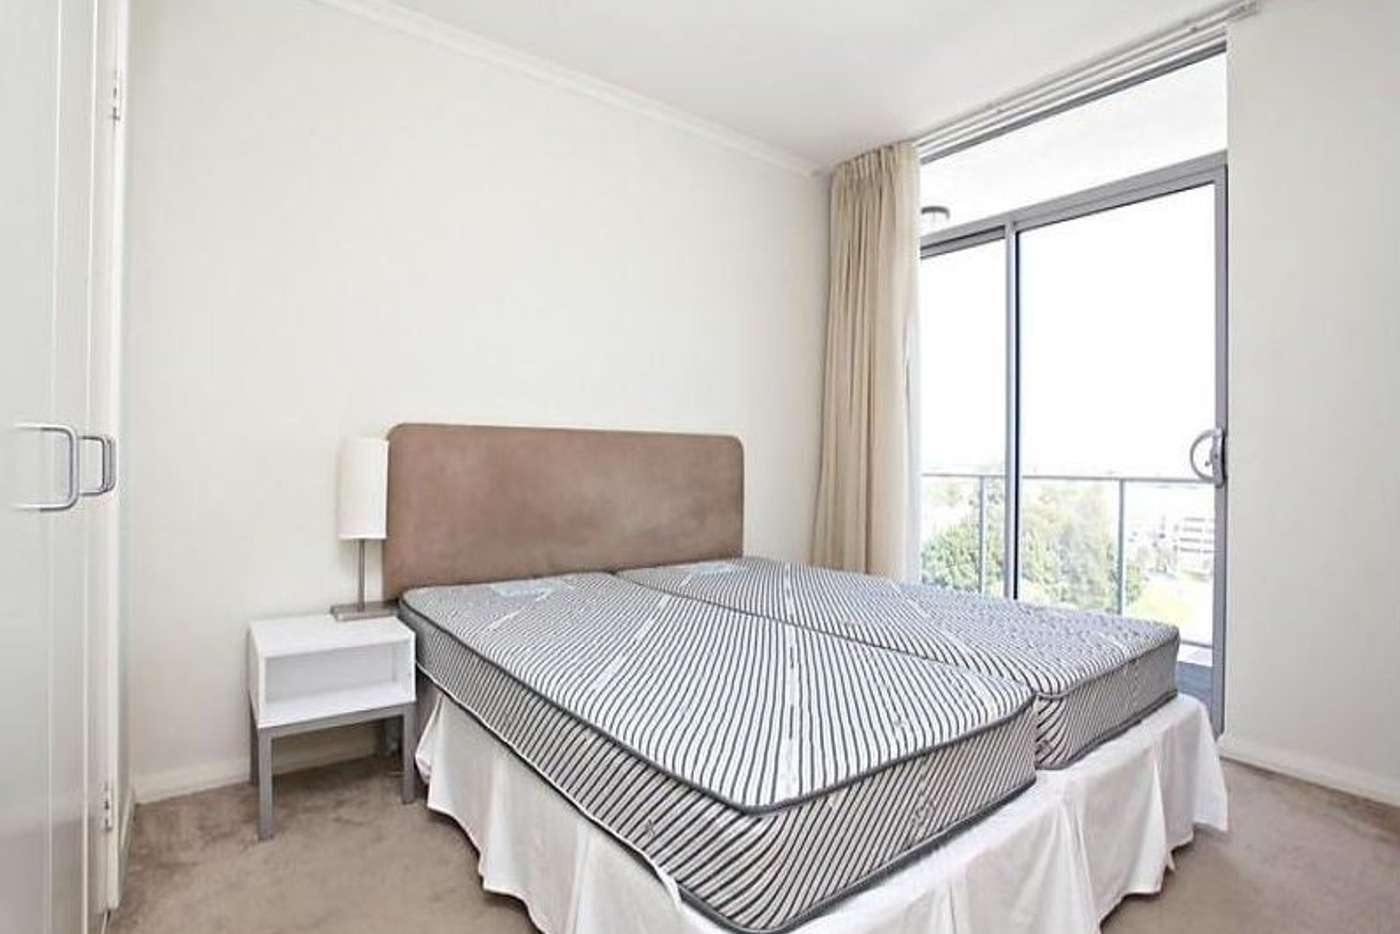 Sixth view of Homely apartment listing, 113/996 Hay Street, Perth WA 6000